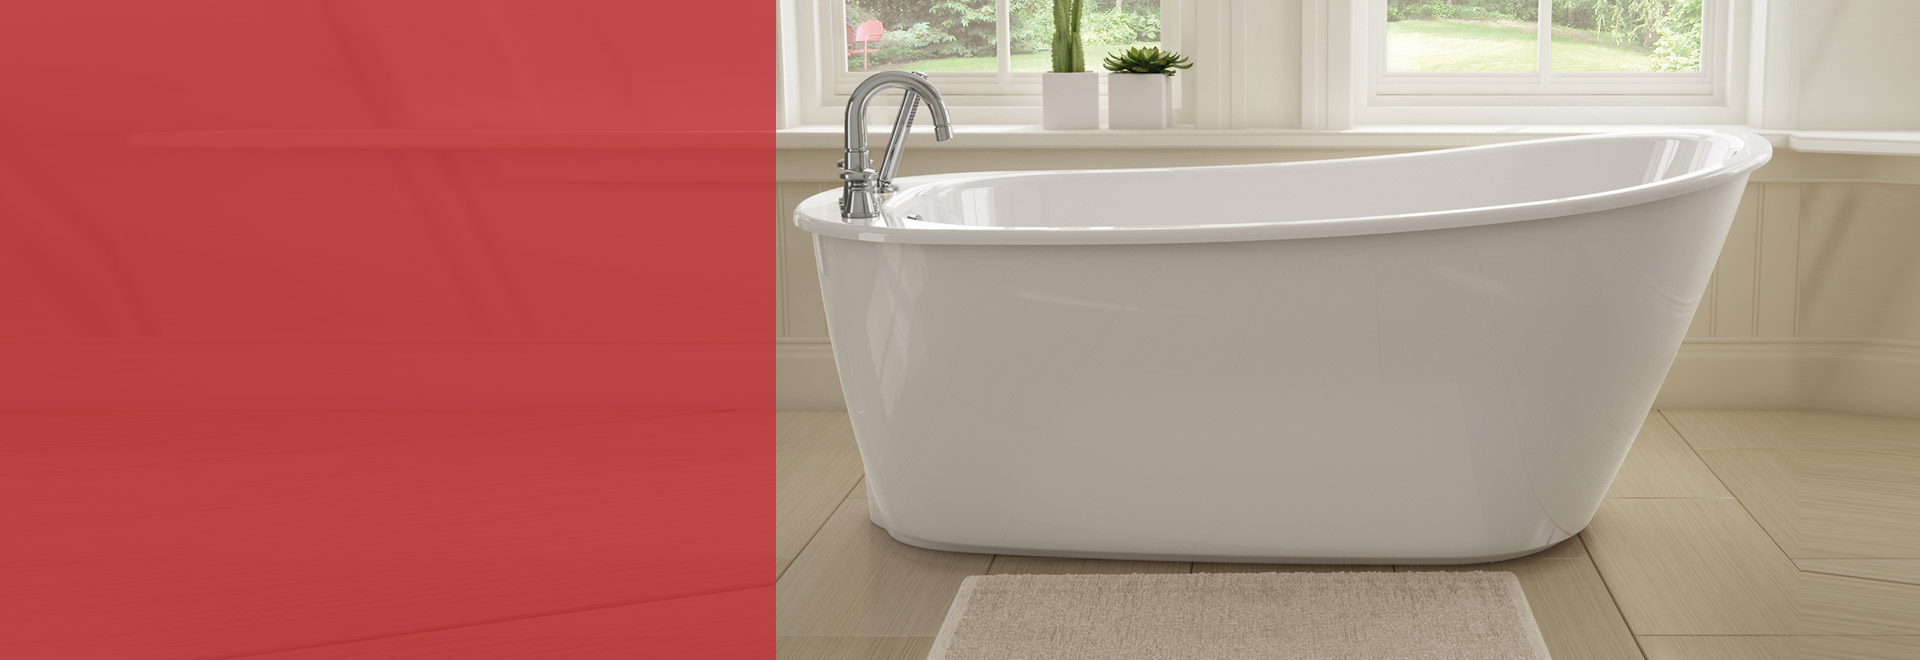 bathtub resurfacing companies in uae